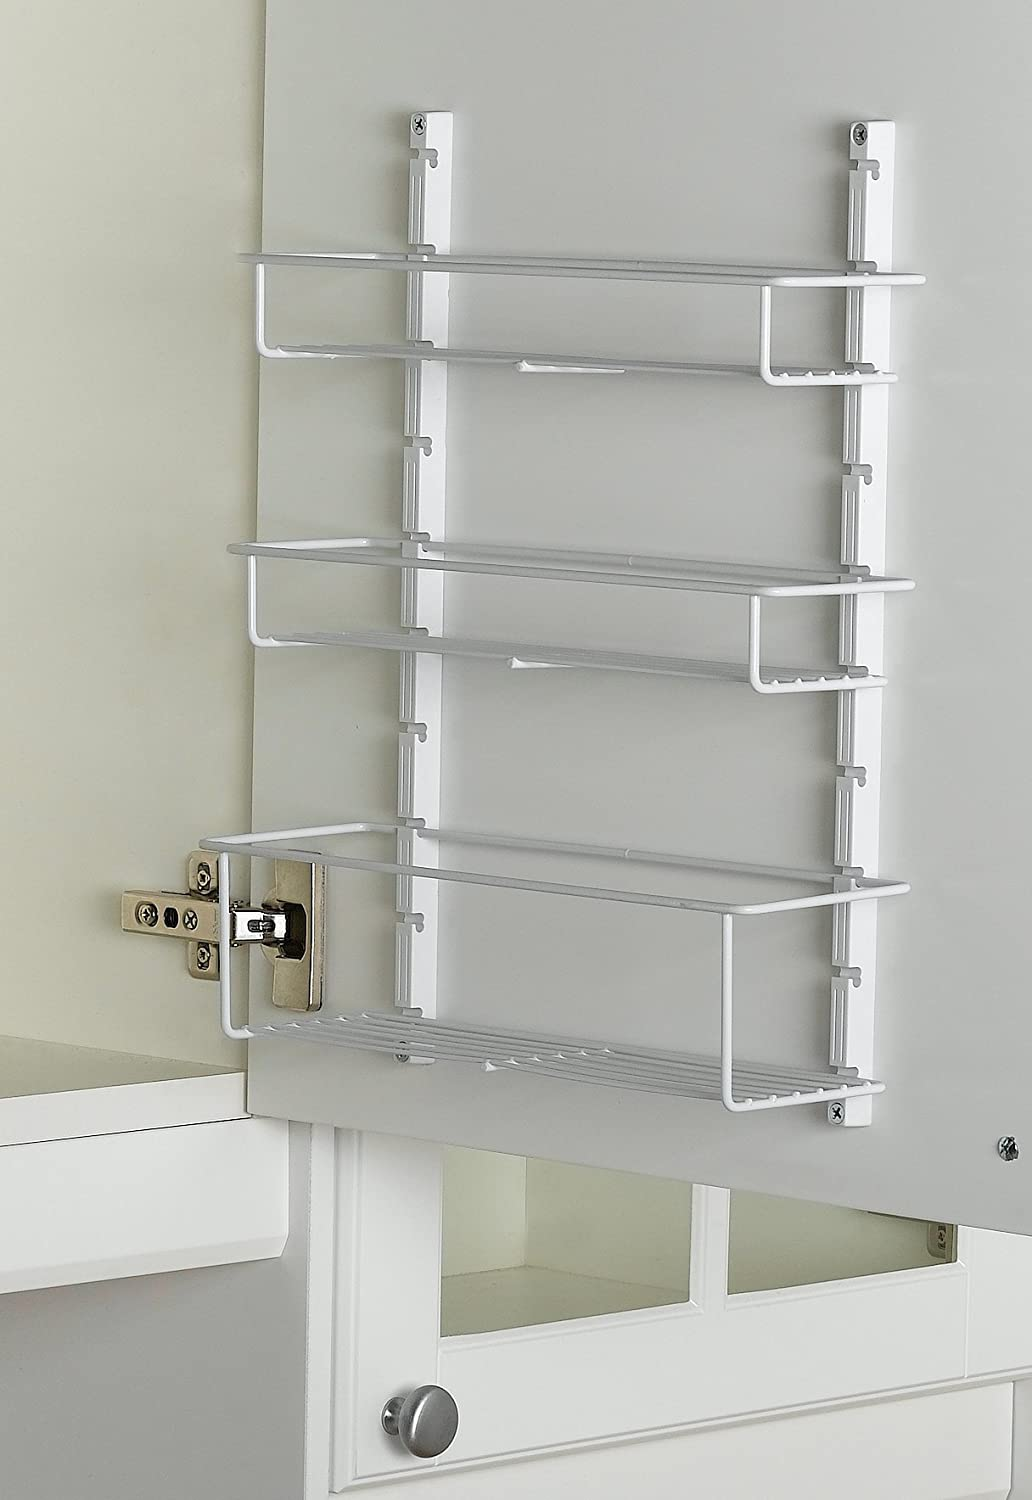 Amazon.com: ClosetMaid 3996 Kitchen Spice Rack, White: Closetmaid Wall  Cabinet: Kitchen U0026 Dining